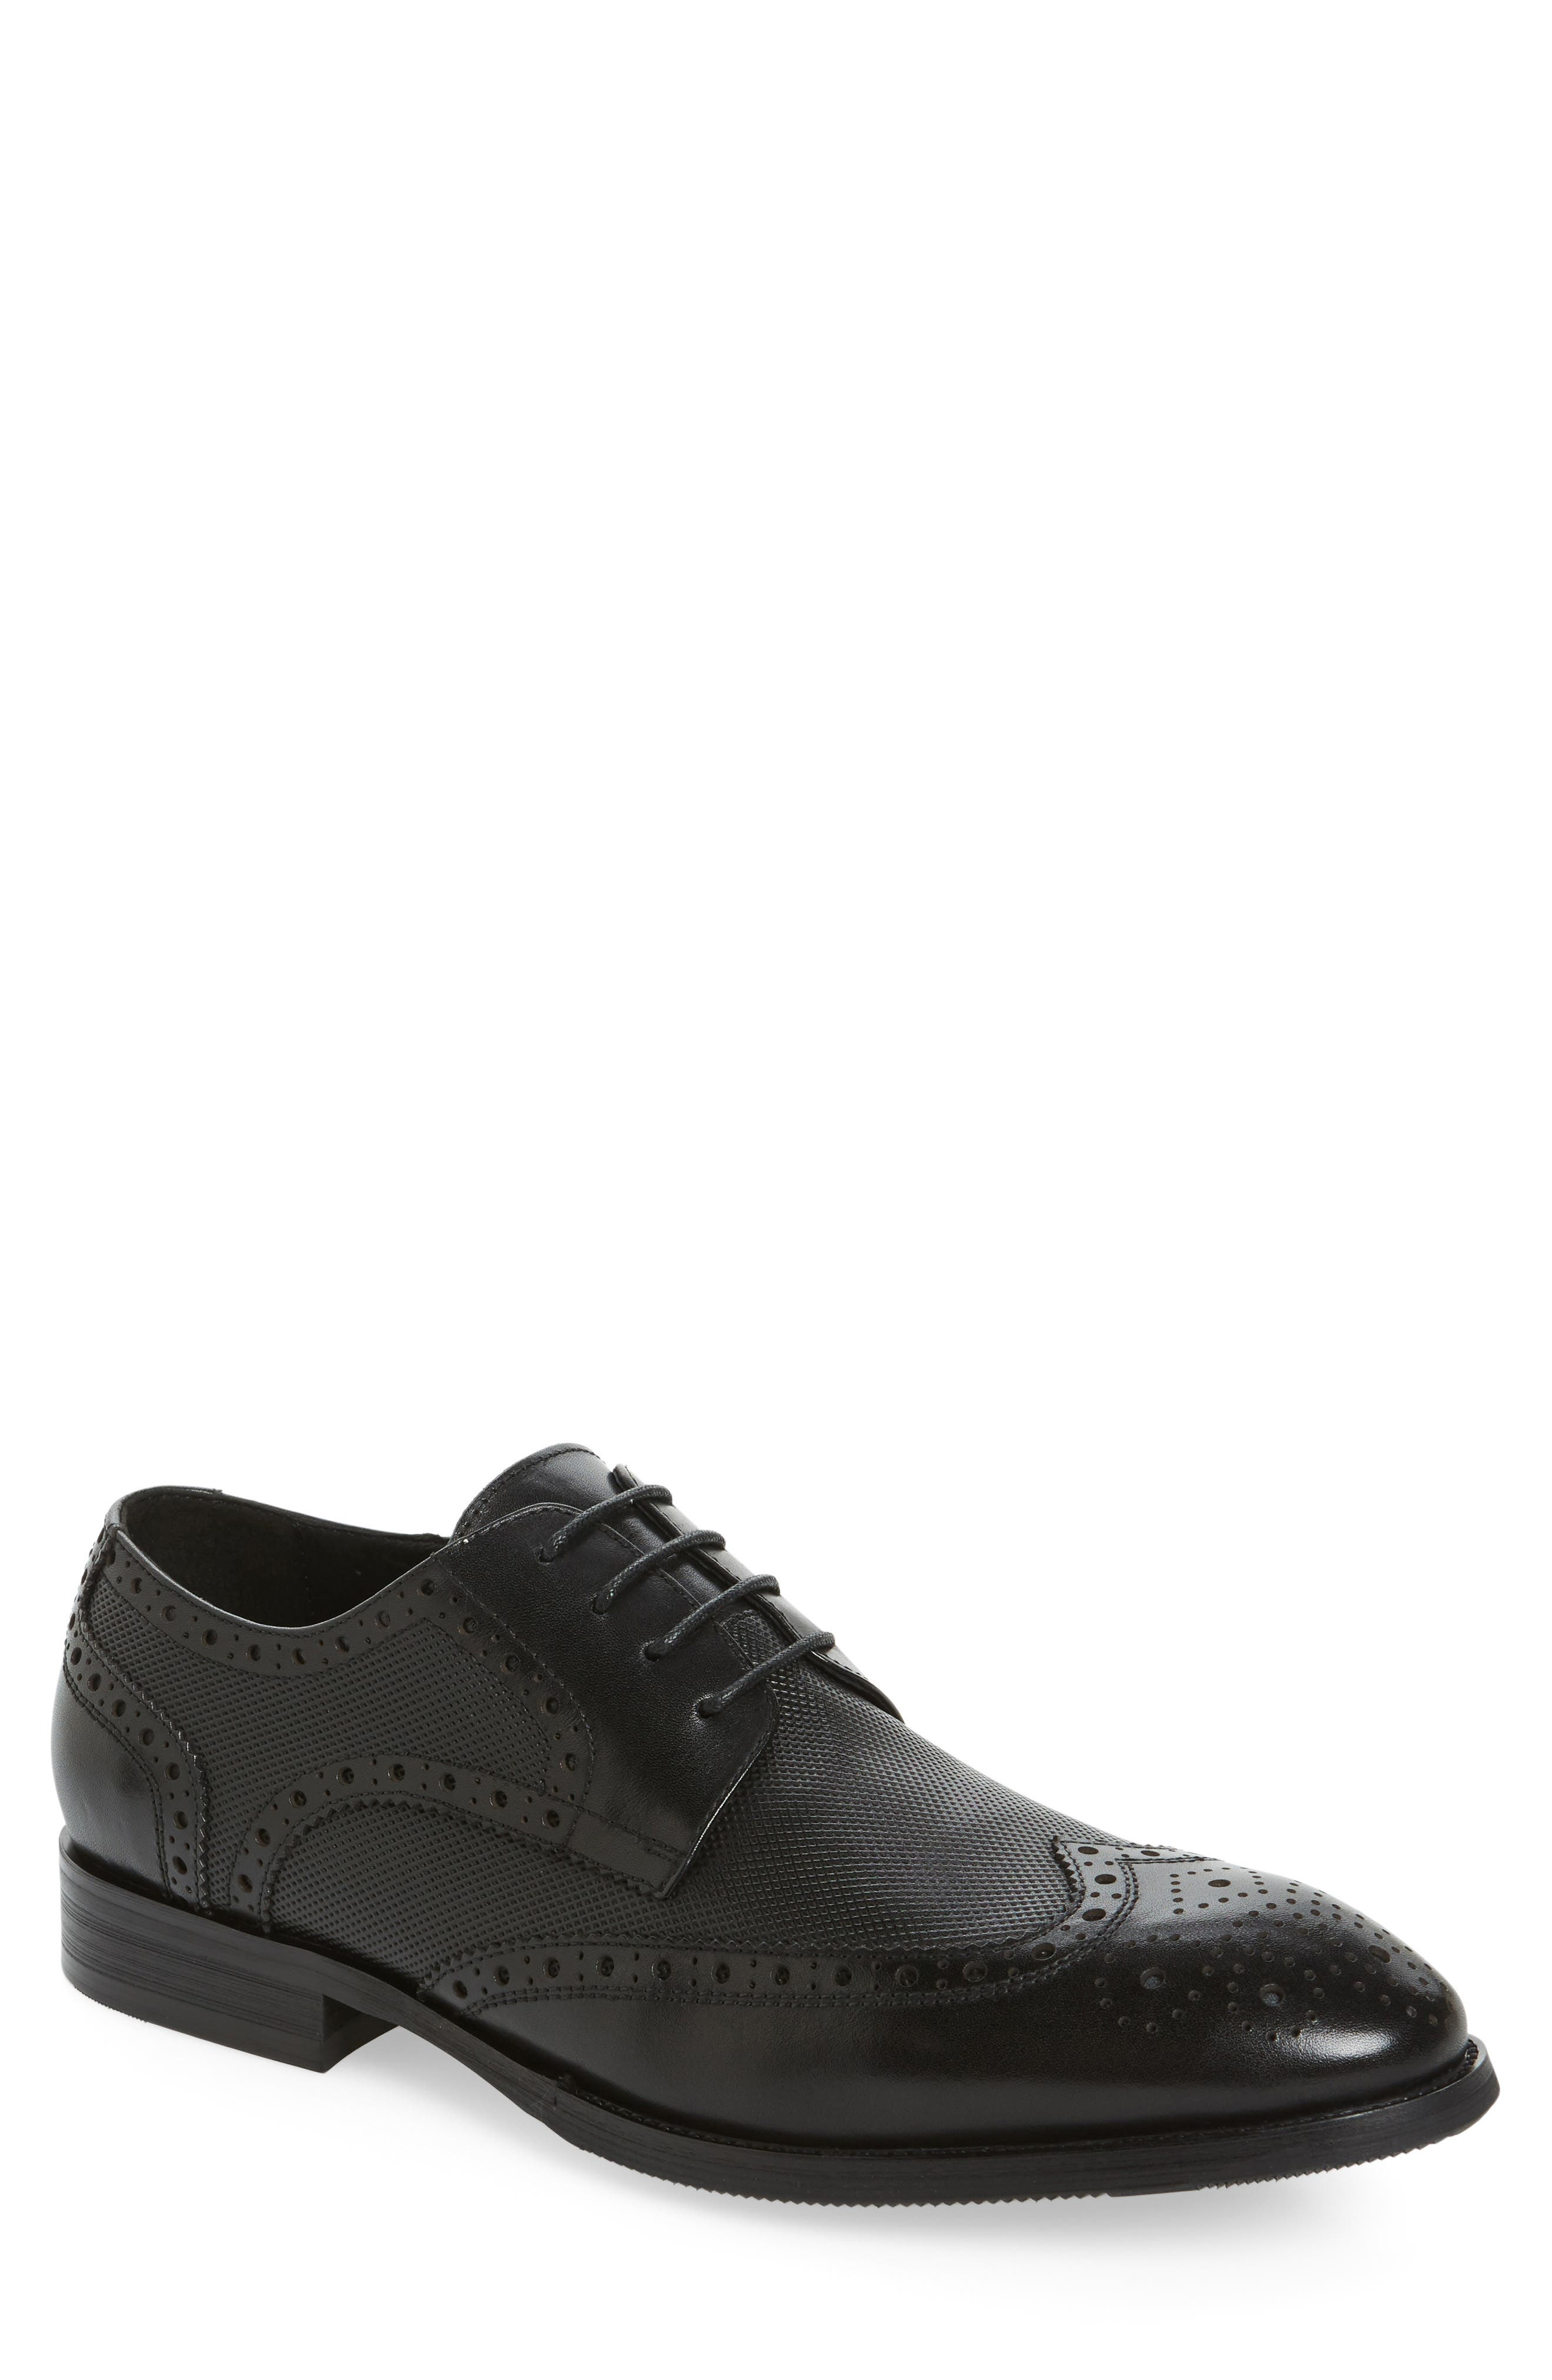 Rossini Wingtip,                             Main thumbnail 1, color,                             Black Leather